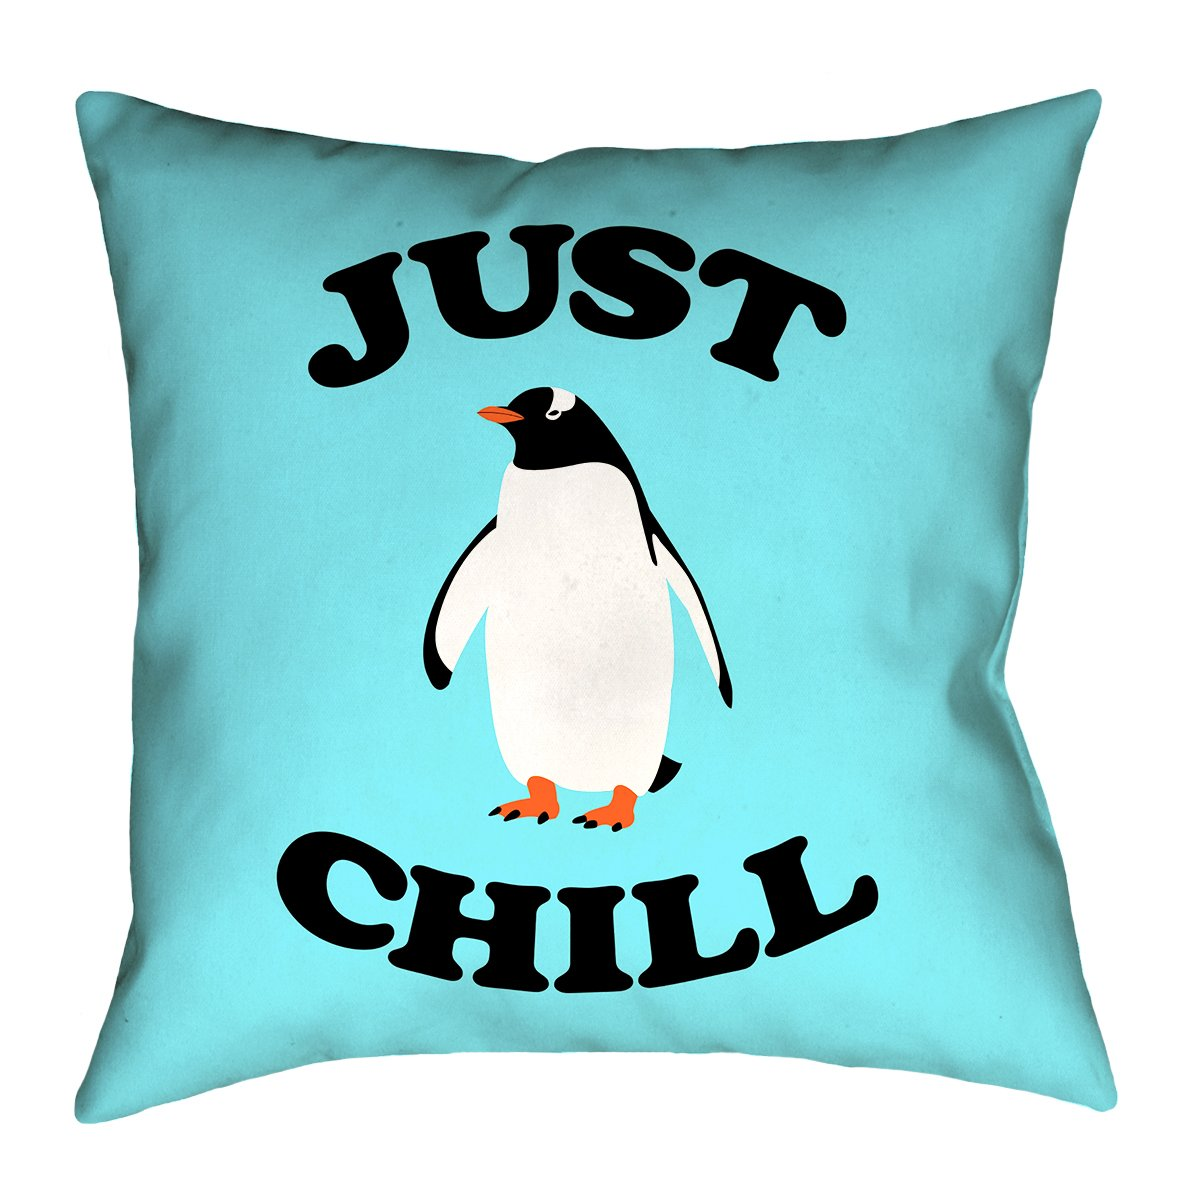 Double Sided Print with Concealed Zipper /& Insert SMI114P2626F Updated Fabric ArtVerse Katelyn Smith Just Chill Penguin 26 x 26 Pillow-Faux Linen